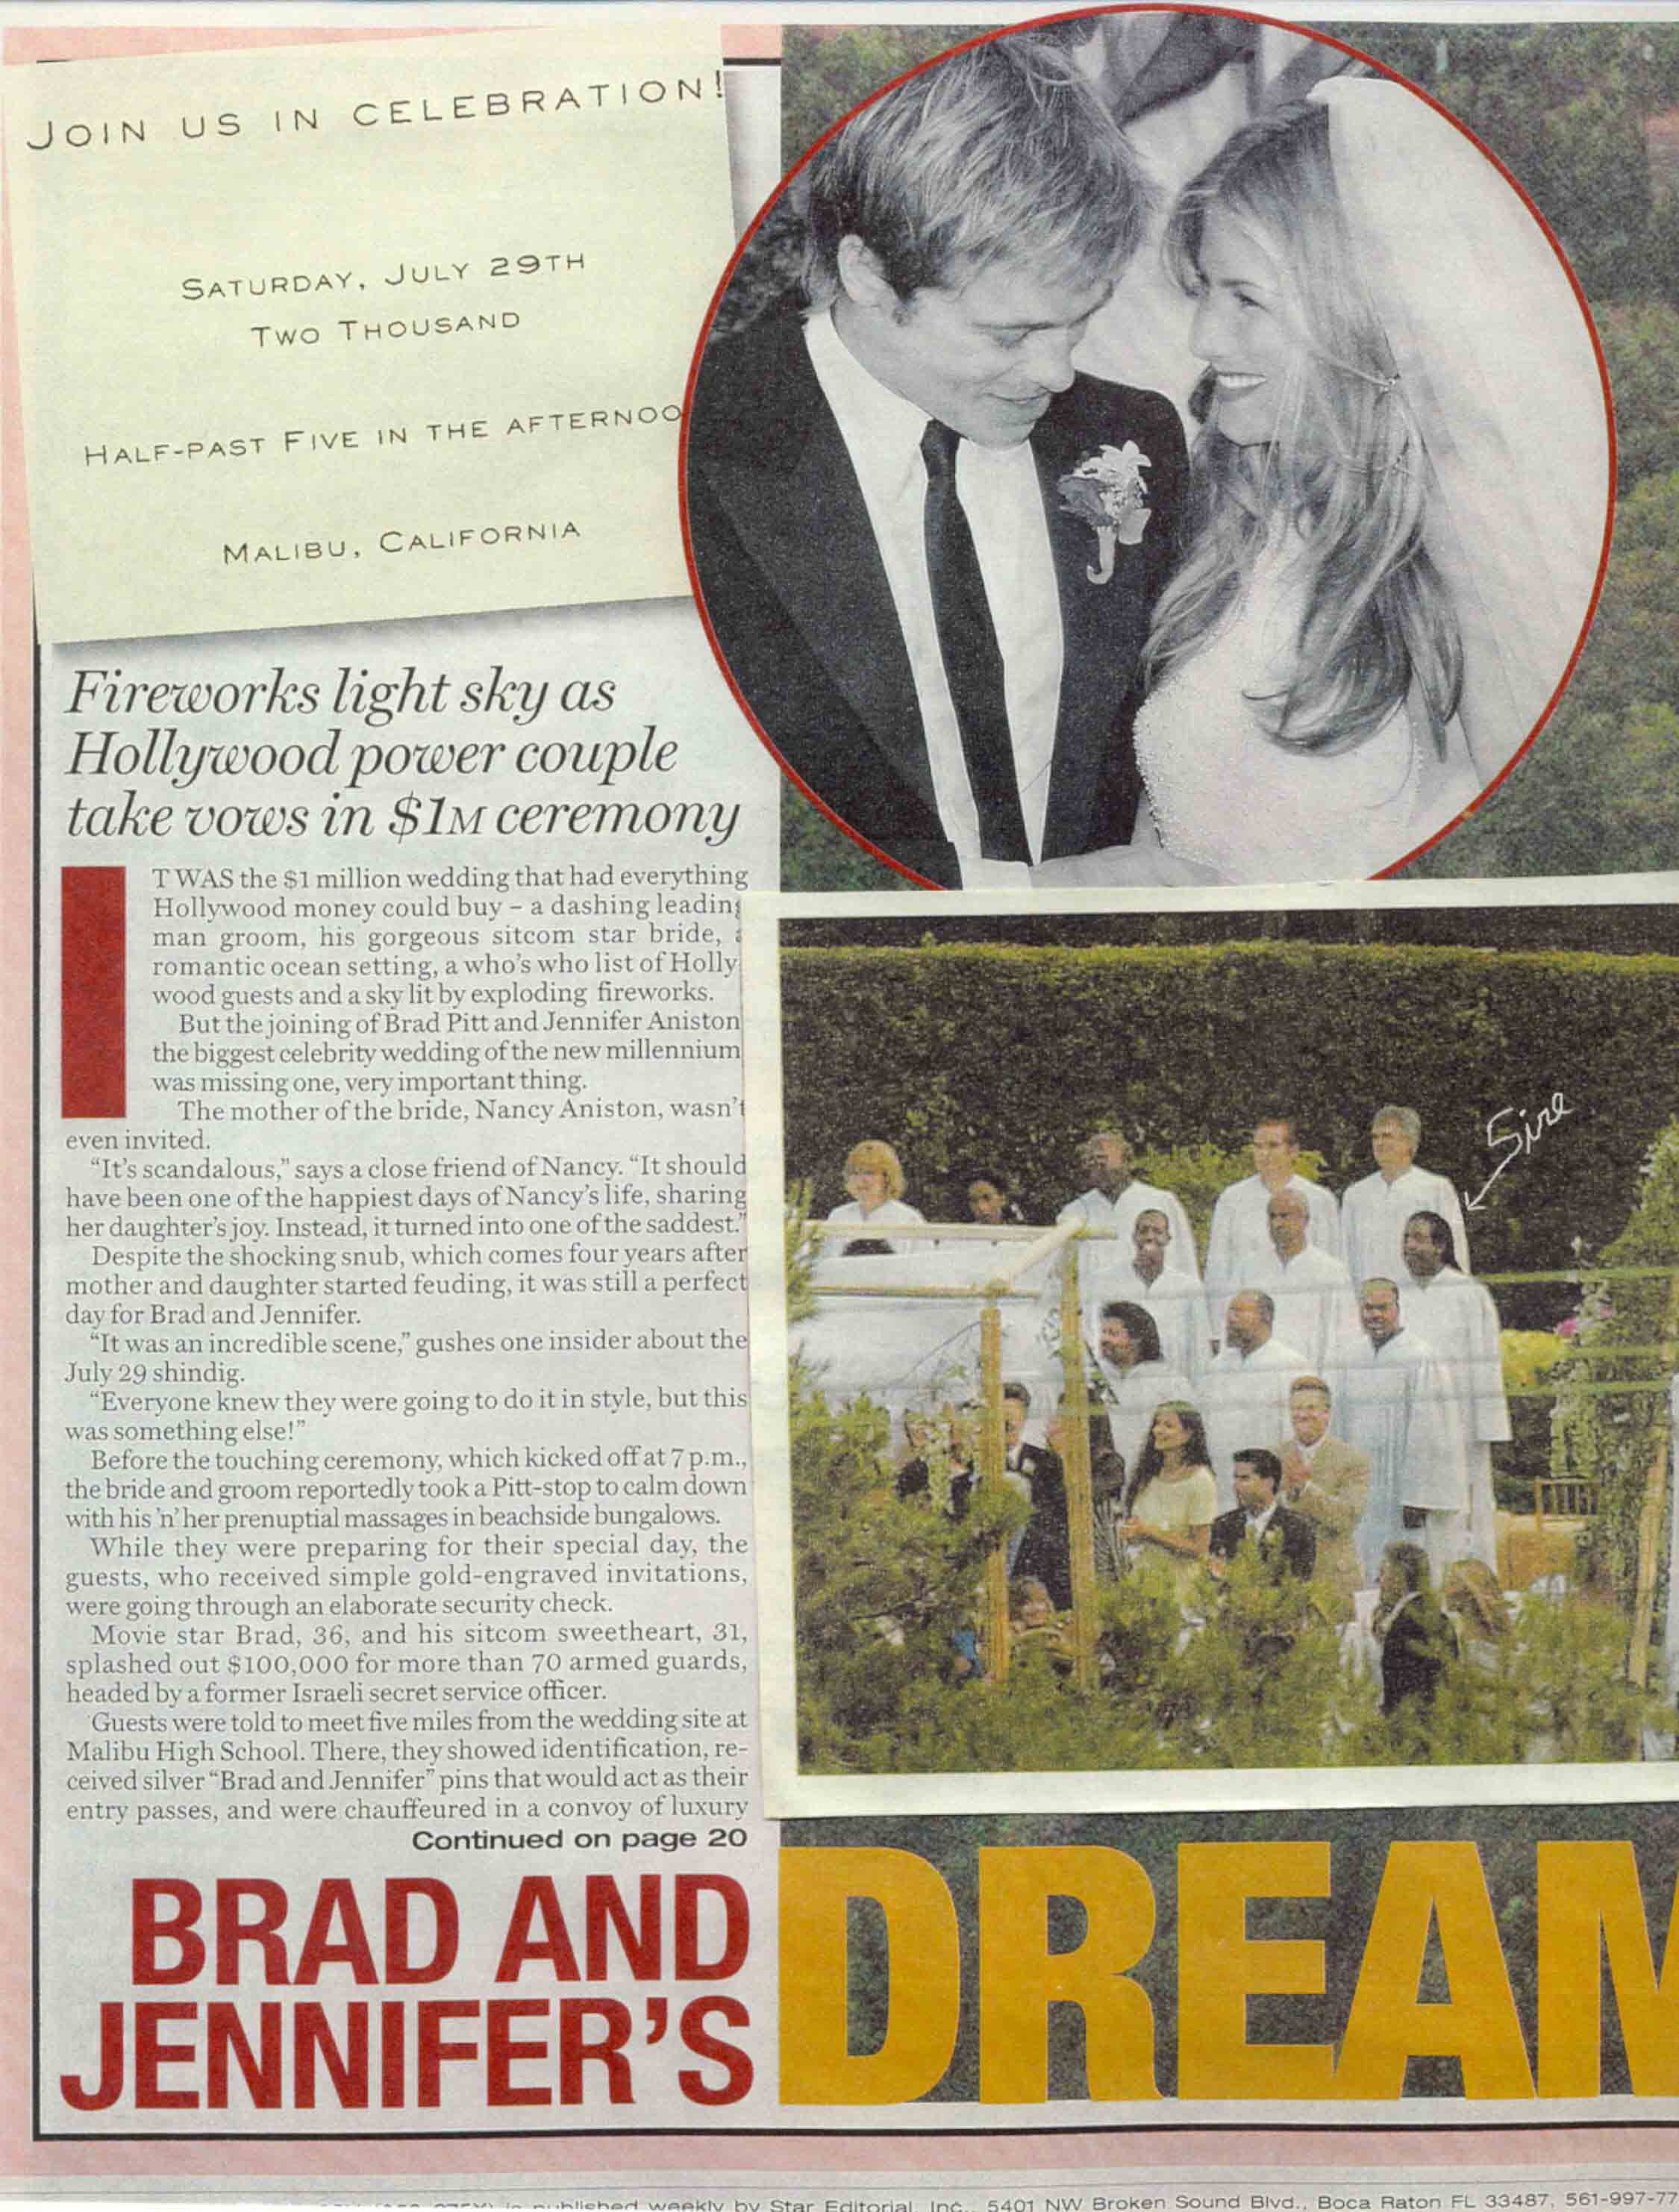 Brad & Jennifer Pitt's Wedding